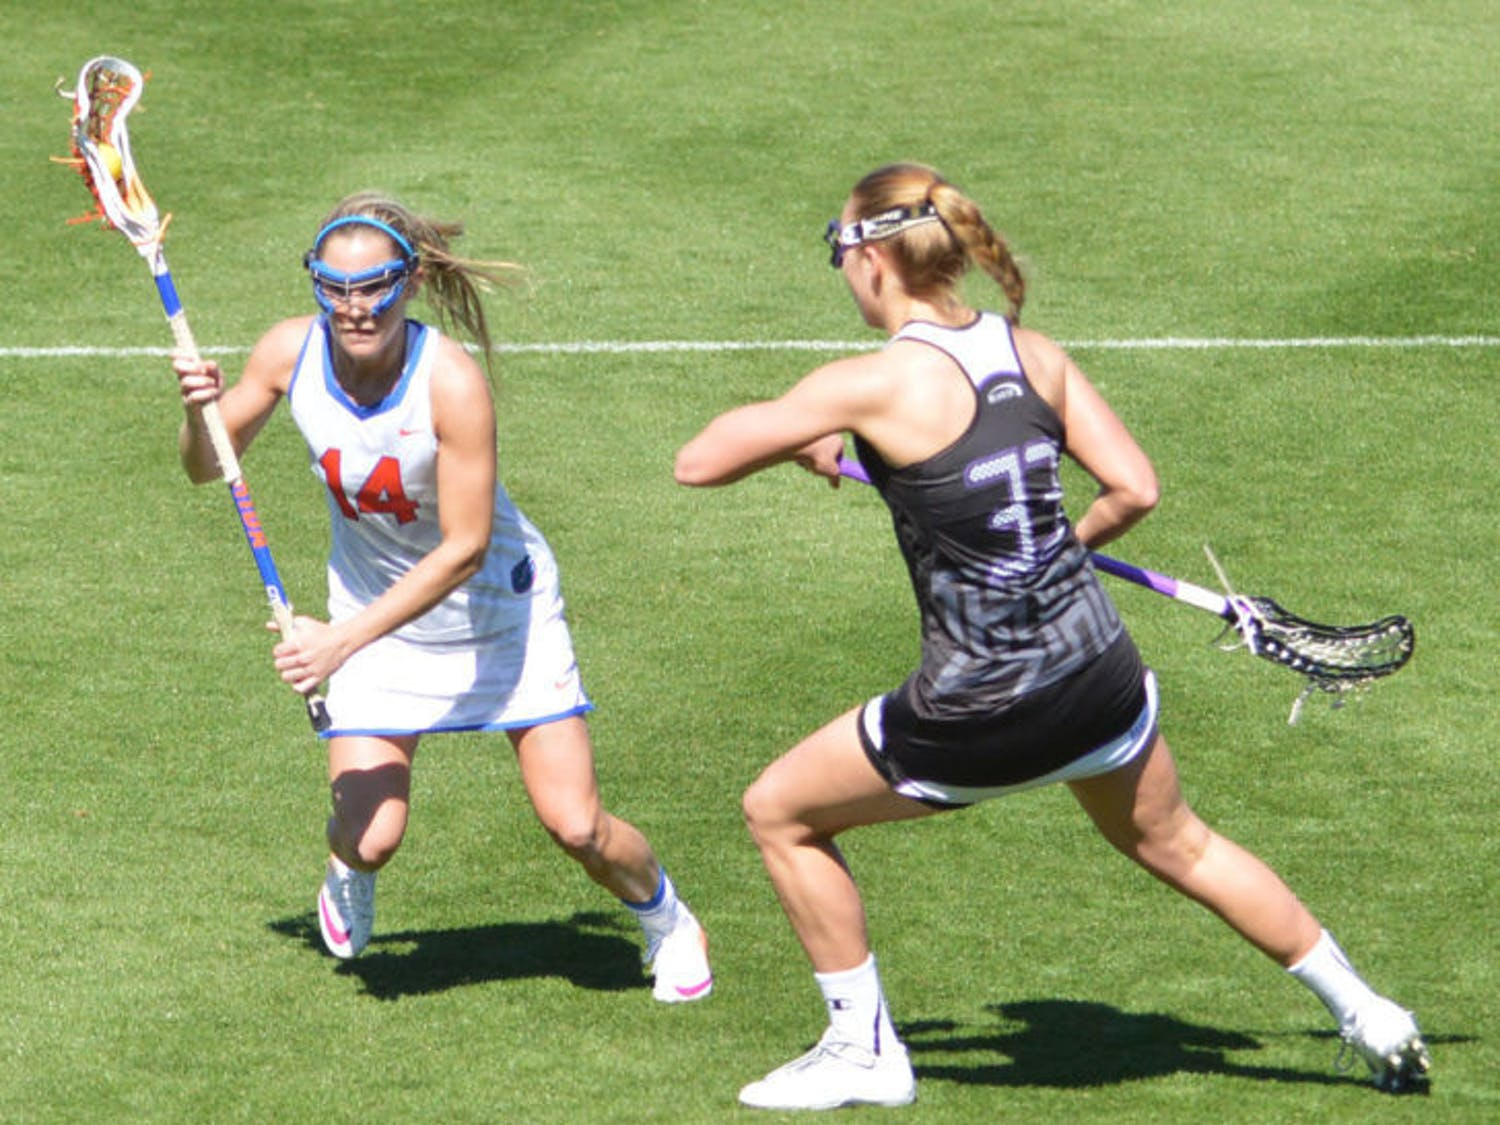 Nora Barry drives the ball toward the net during Florida's 18-7 win against High Point on Feb. 15 at Donald R. Dizney Stadium. Barry scored the game-winning goal against Northwestern on Sunday to help the Gators clinch the American Lacrosse Conference Tournament title.